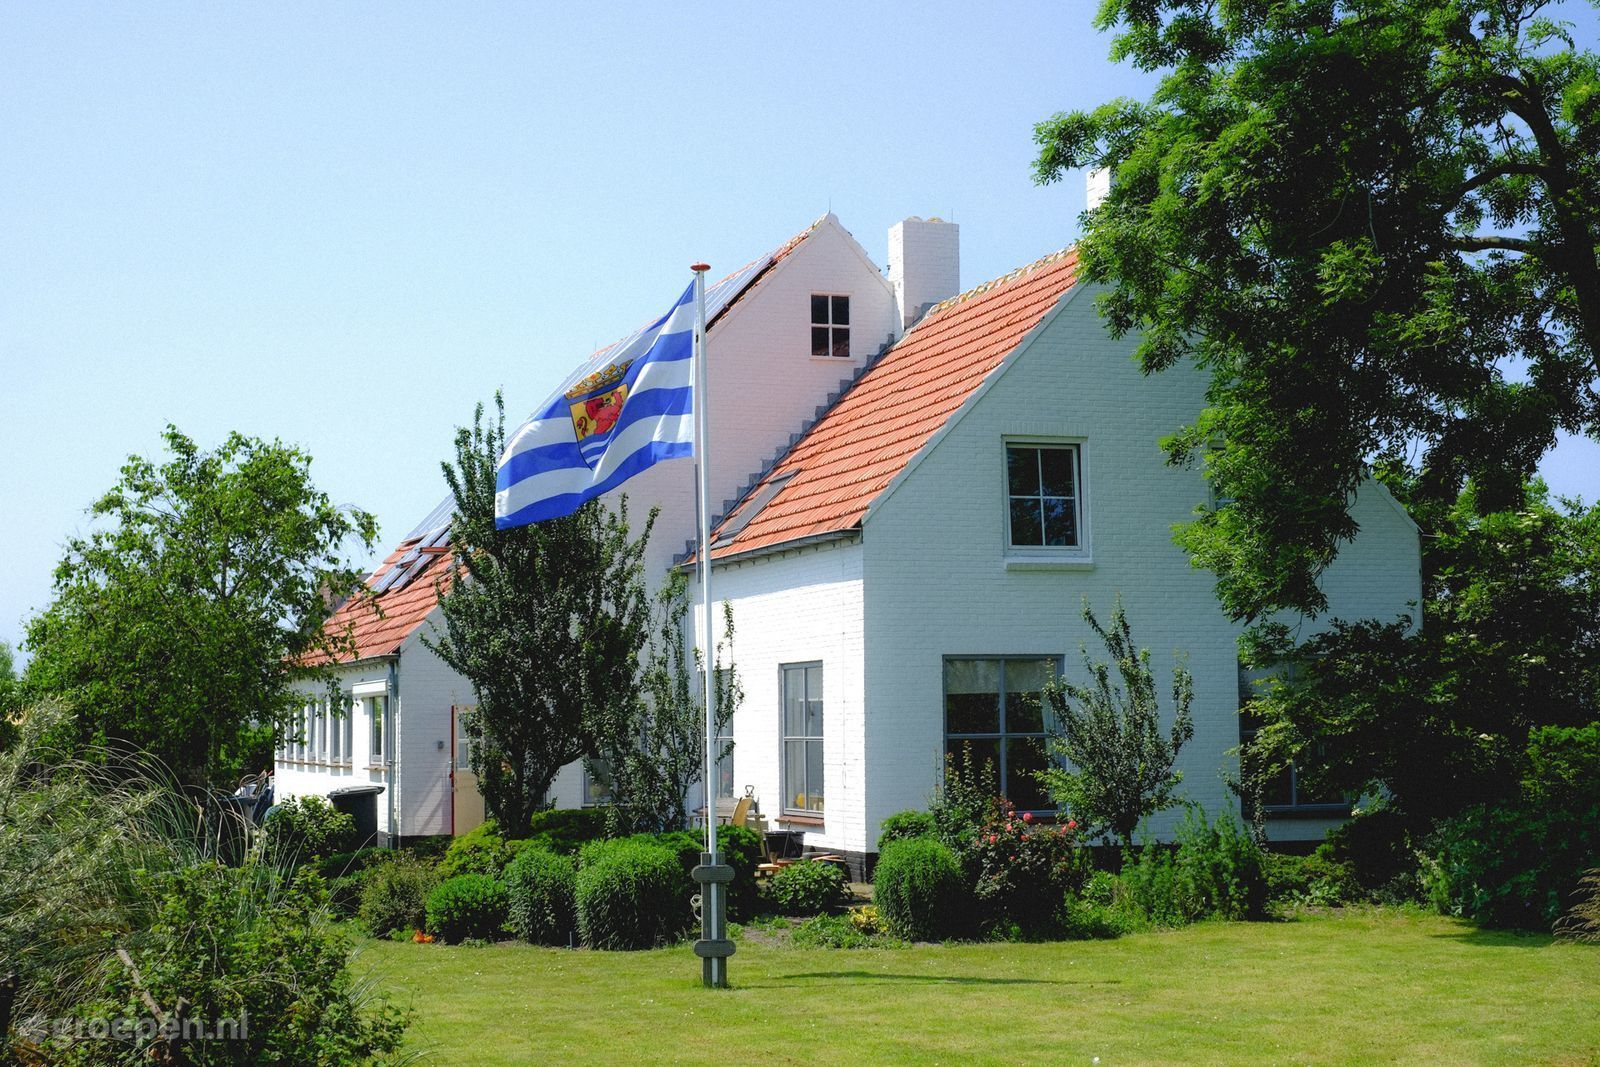 Group accommodation Kerkwerve